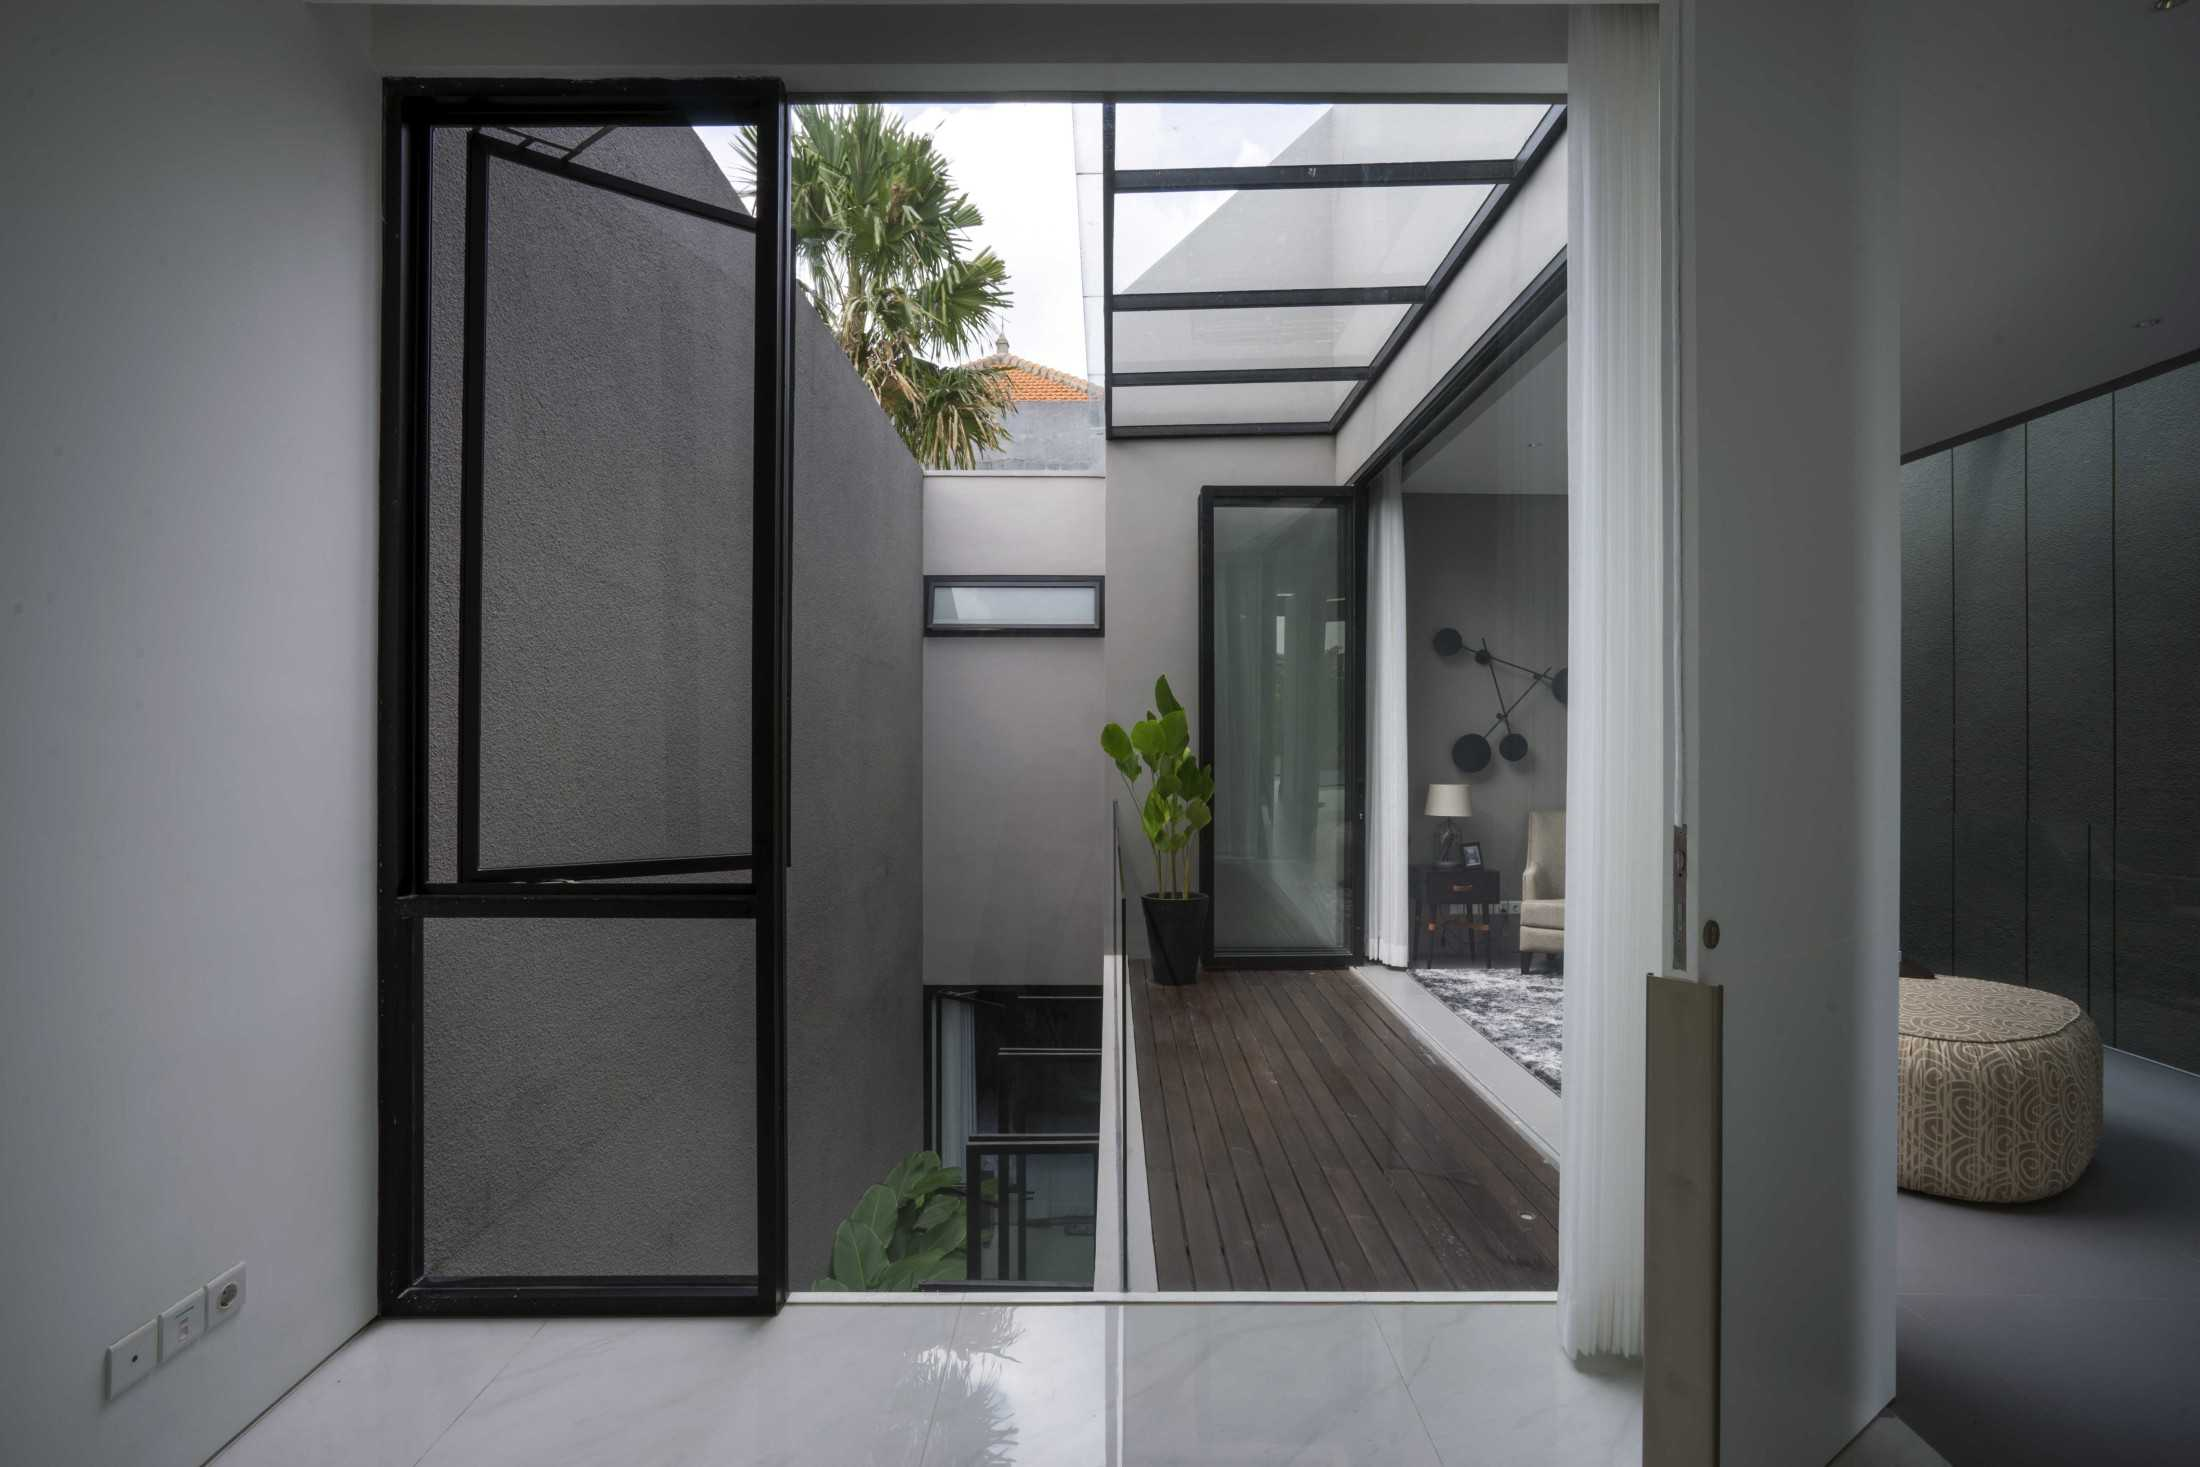 Simple Projects Architecture 'hhh' House Surabaya, Kota Sby, Jawa Timur, Indonesia  Simple-Projects-Architecture-Hhh-House  75031